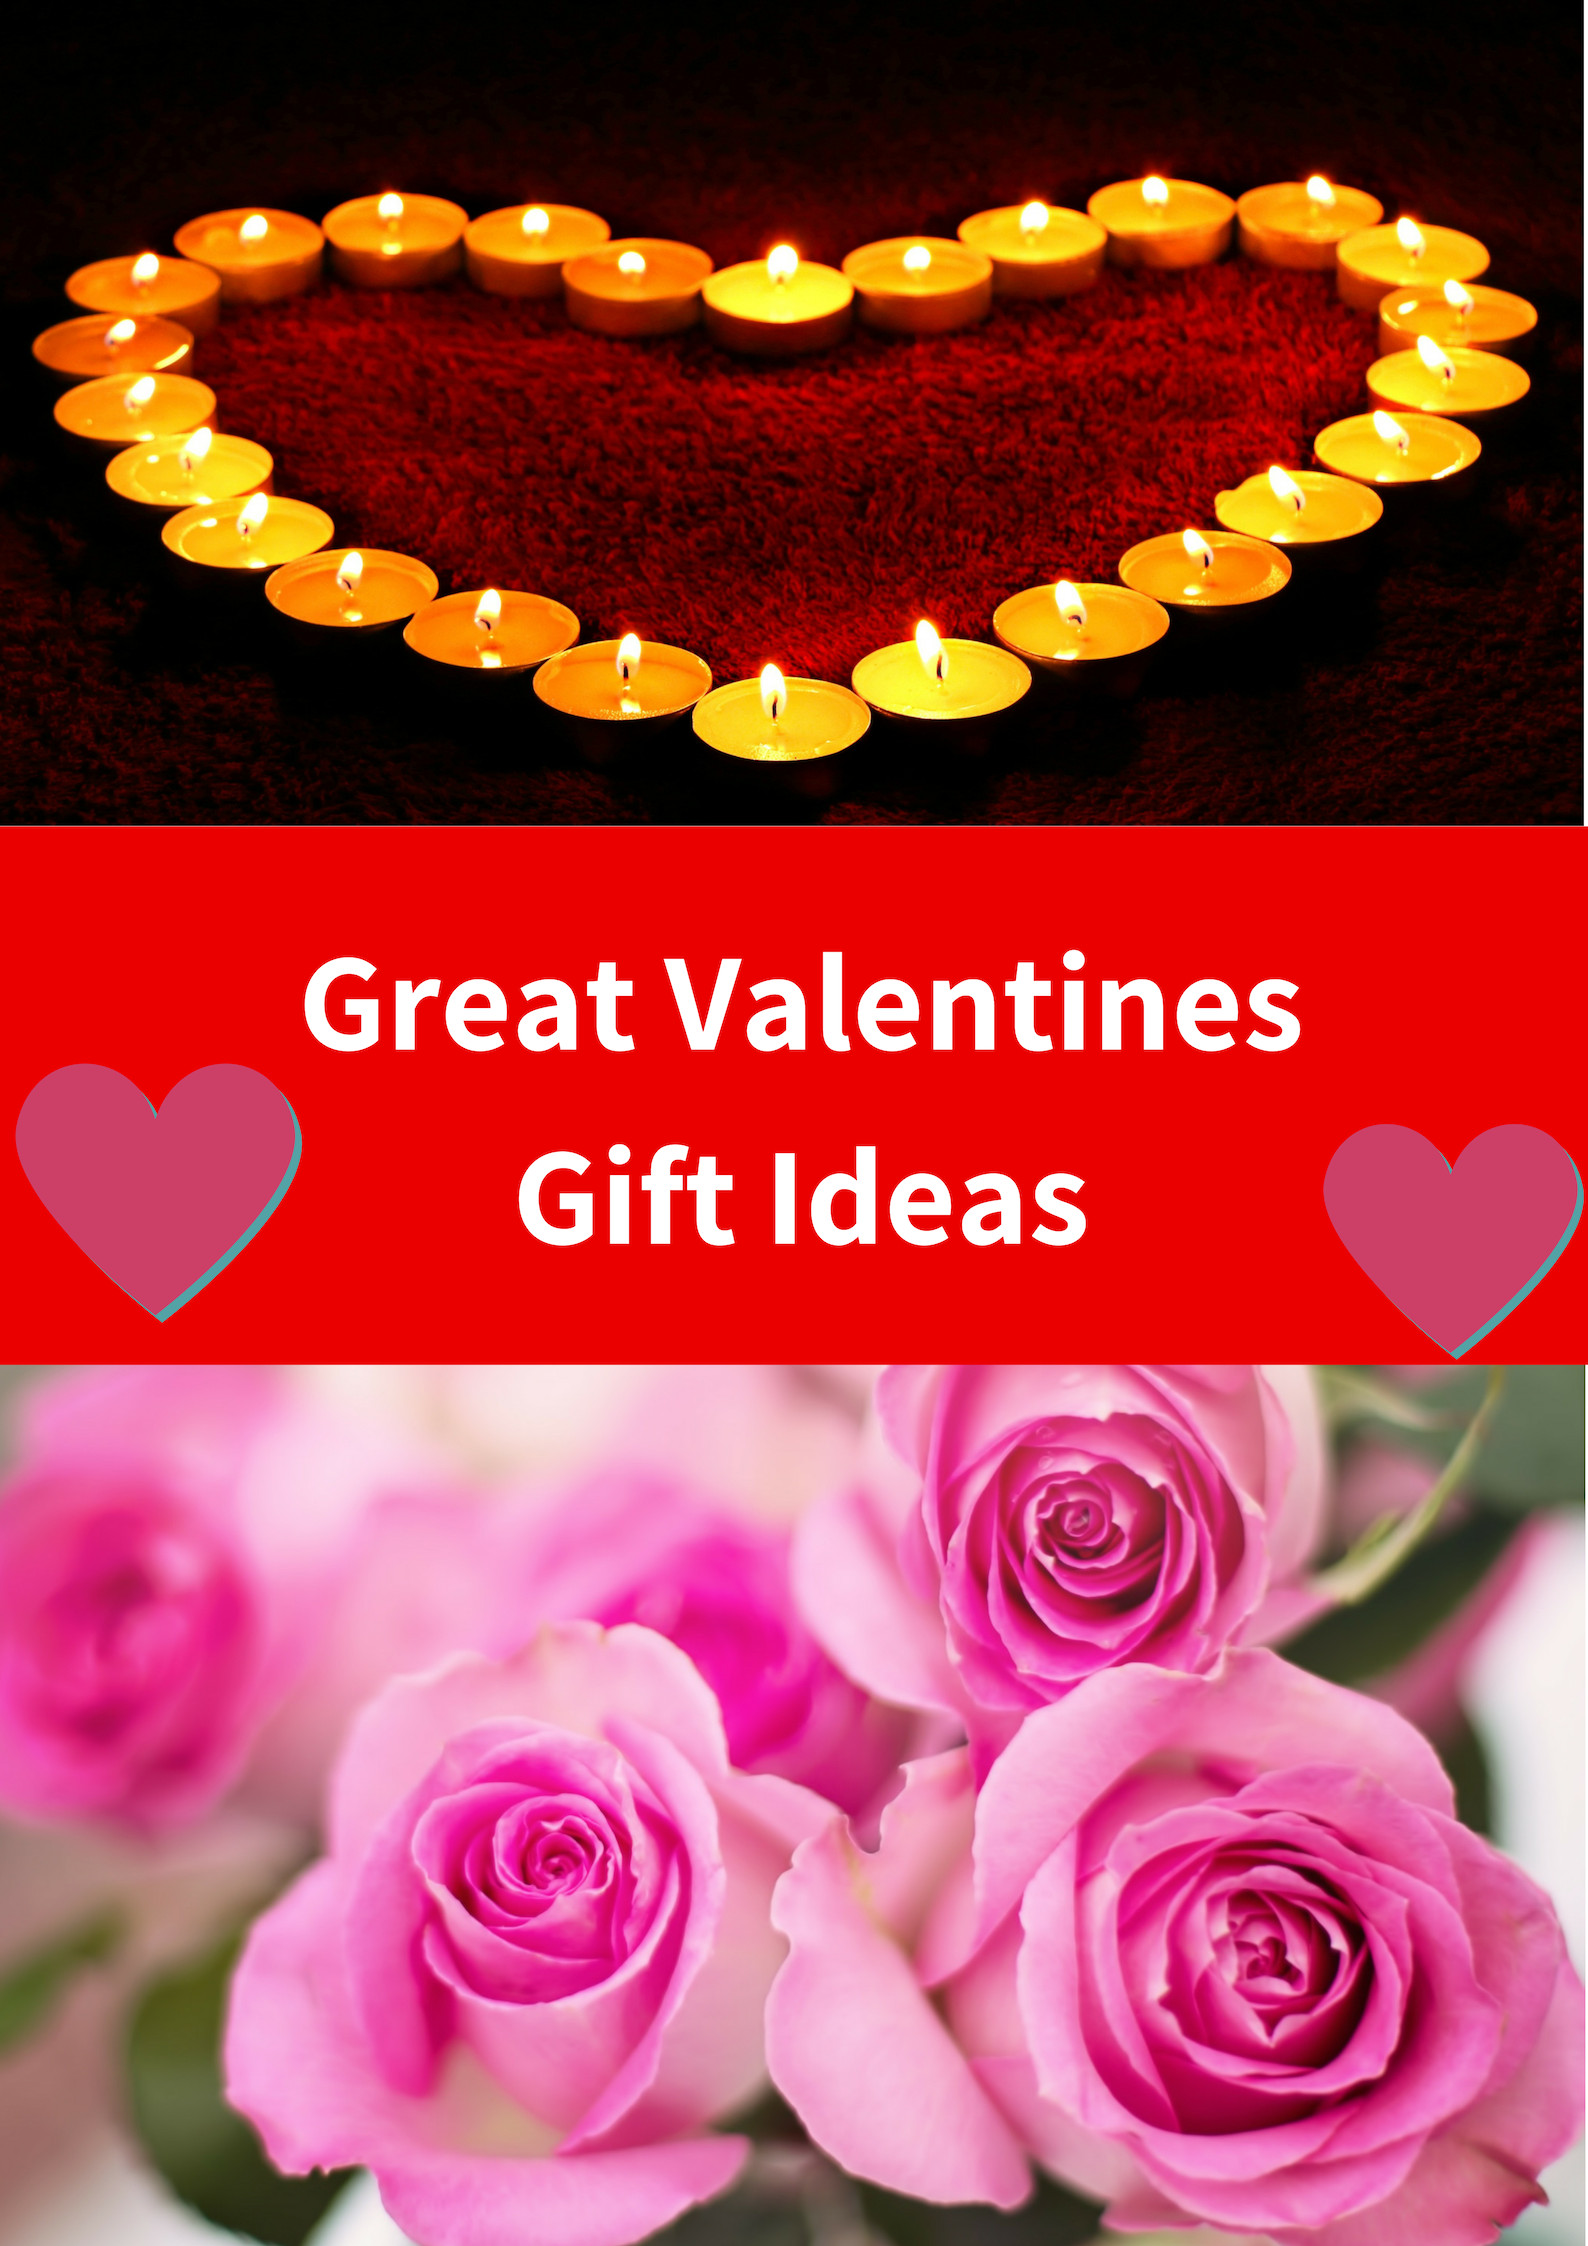 Online Valentine Gift Ideas  Great ideas for Valentines Day ts Gifts for Him Gifts